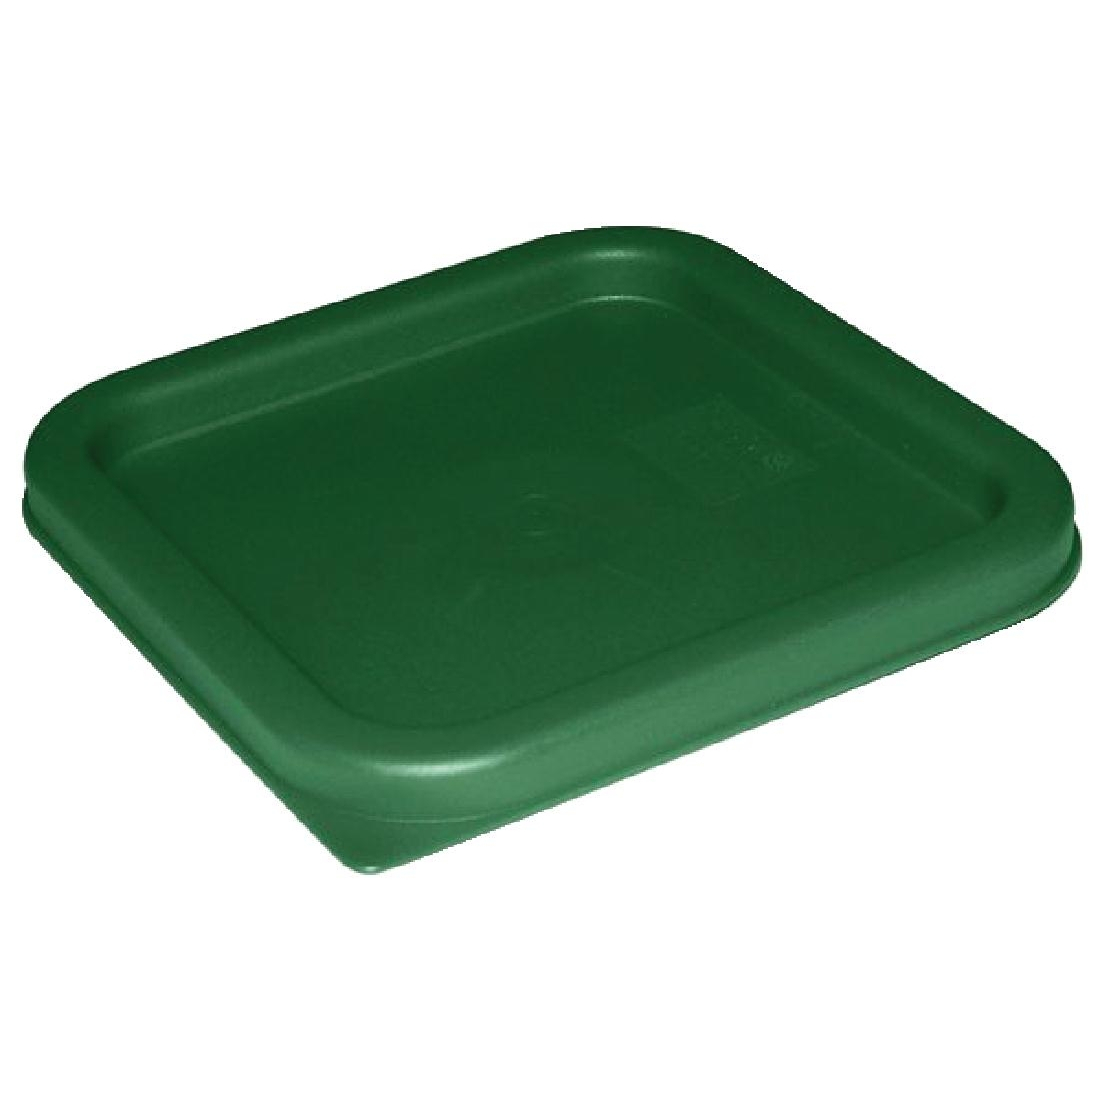 Vogue Large Square Lid - Green